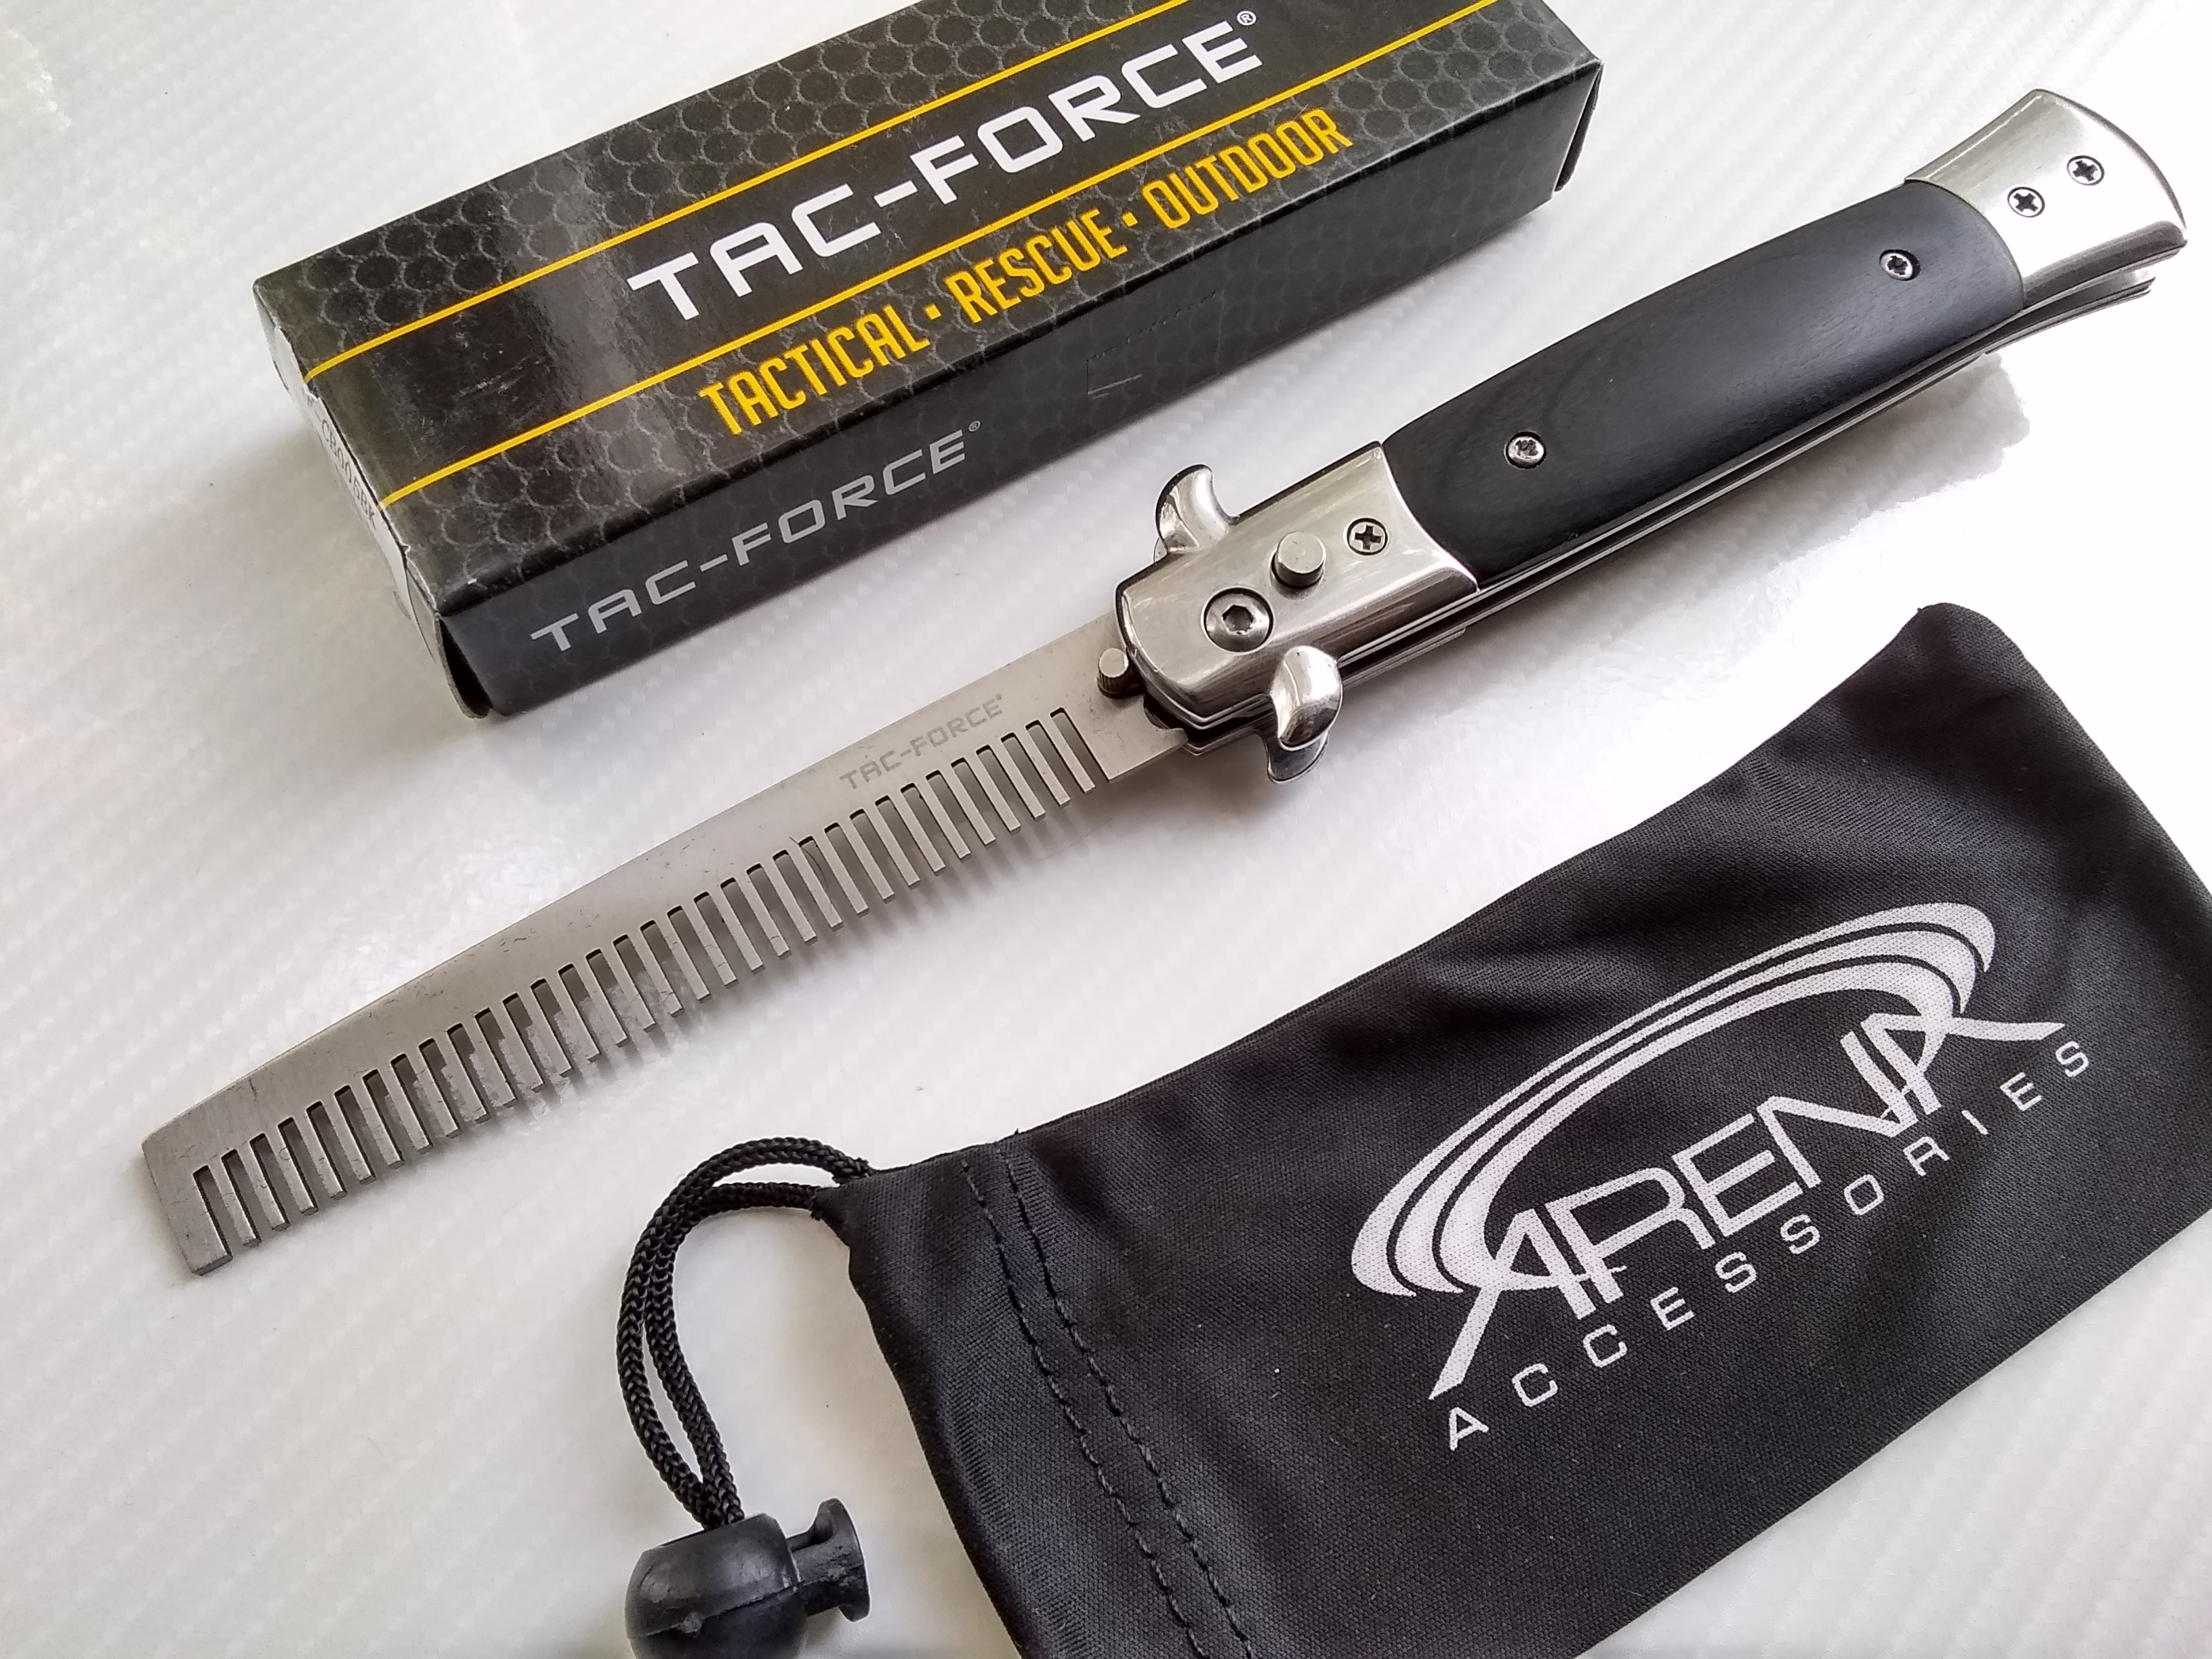 Switchblade Comb Automatic Barber Beard Tool with Black Wood Handle Godfather Stiletto Style Tac-Force Spring Assisted